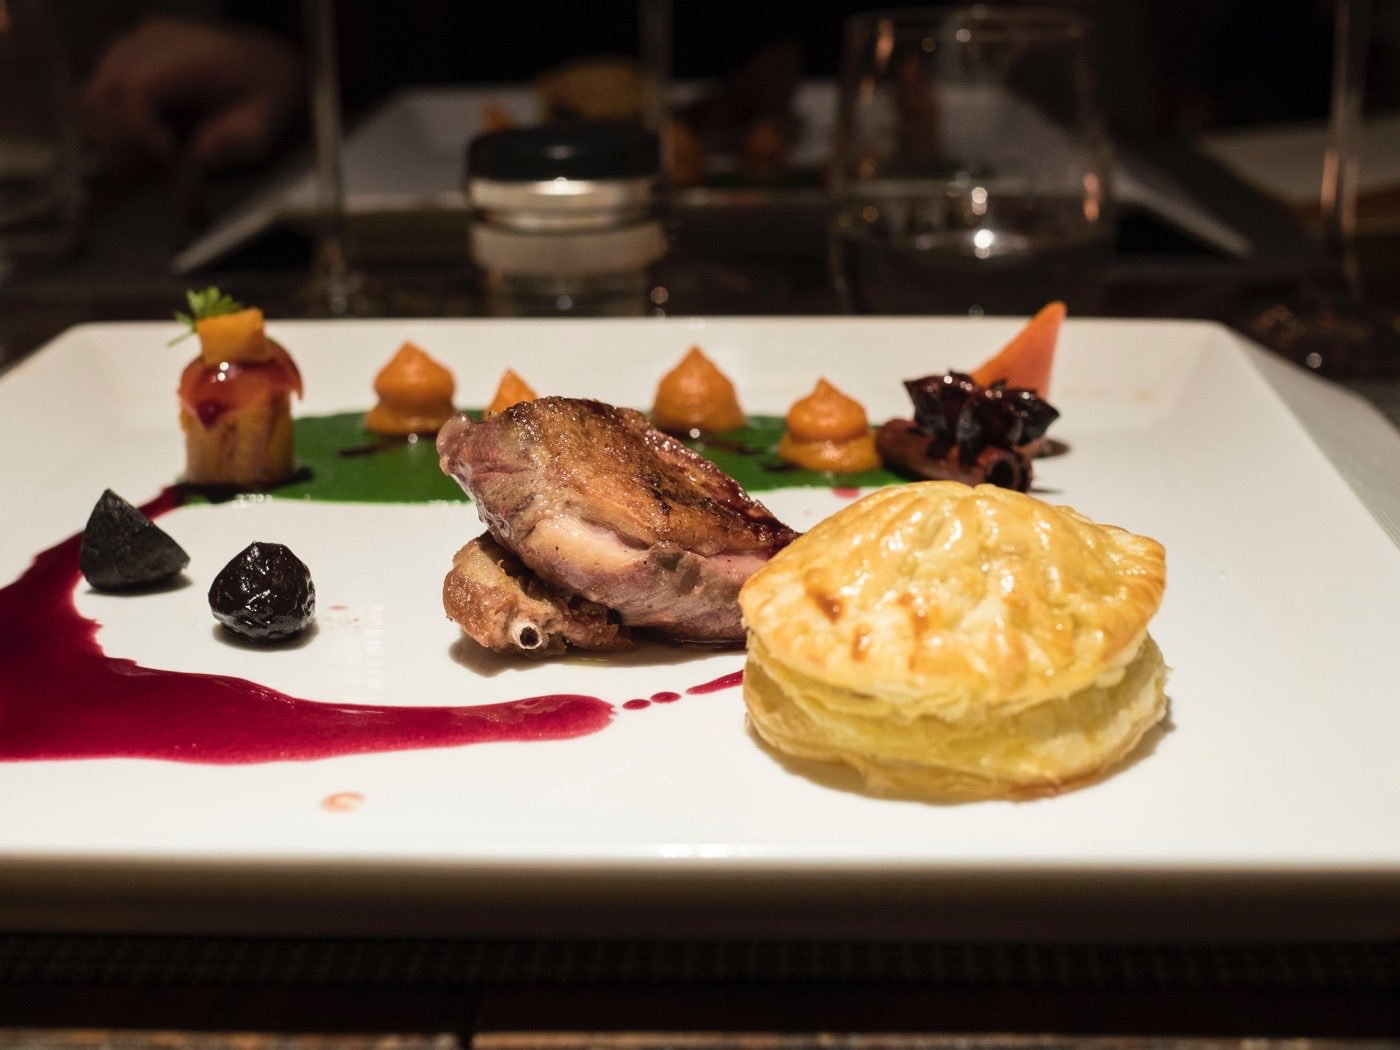 Pigeon and Pastry